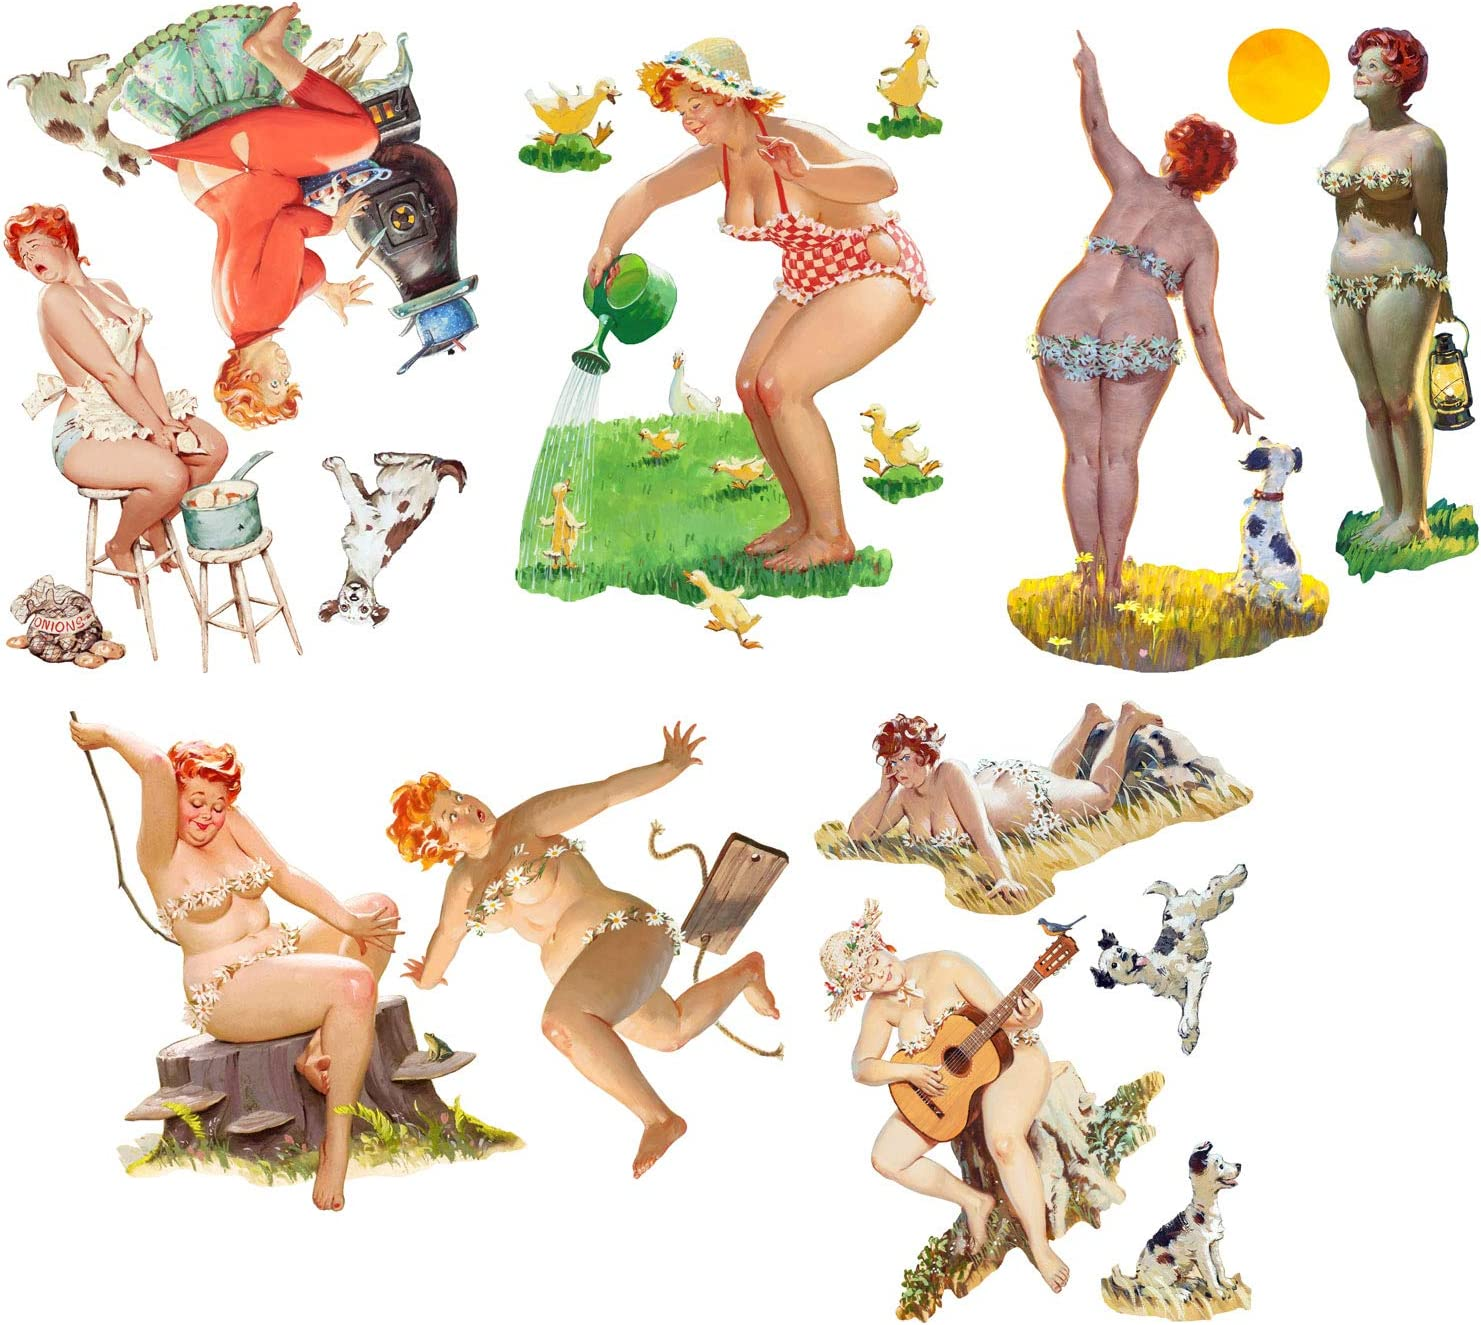 Wall Stickers Hilda Plus Size Chubby Pinup Girl Removable Real Size Vinyl Colorful Wall Decals